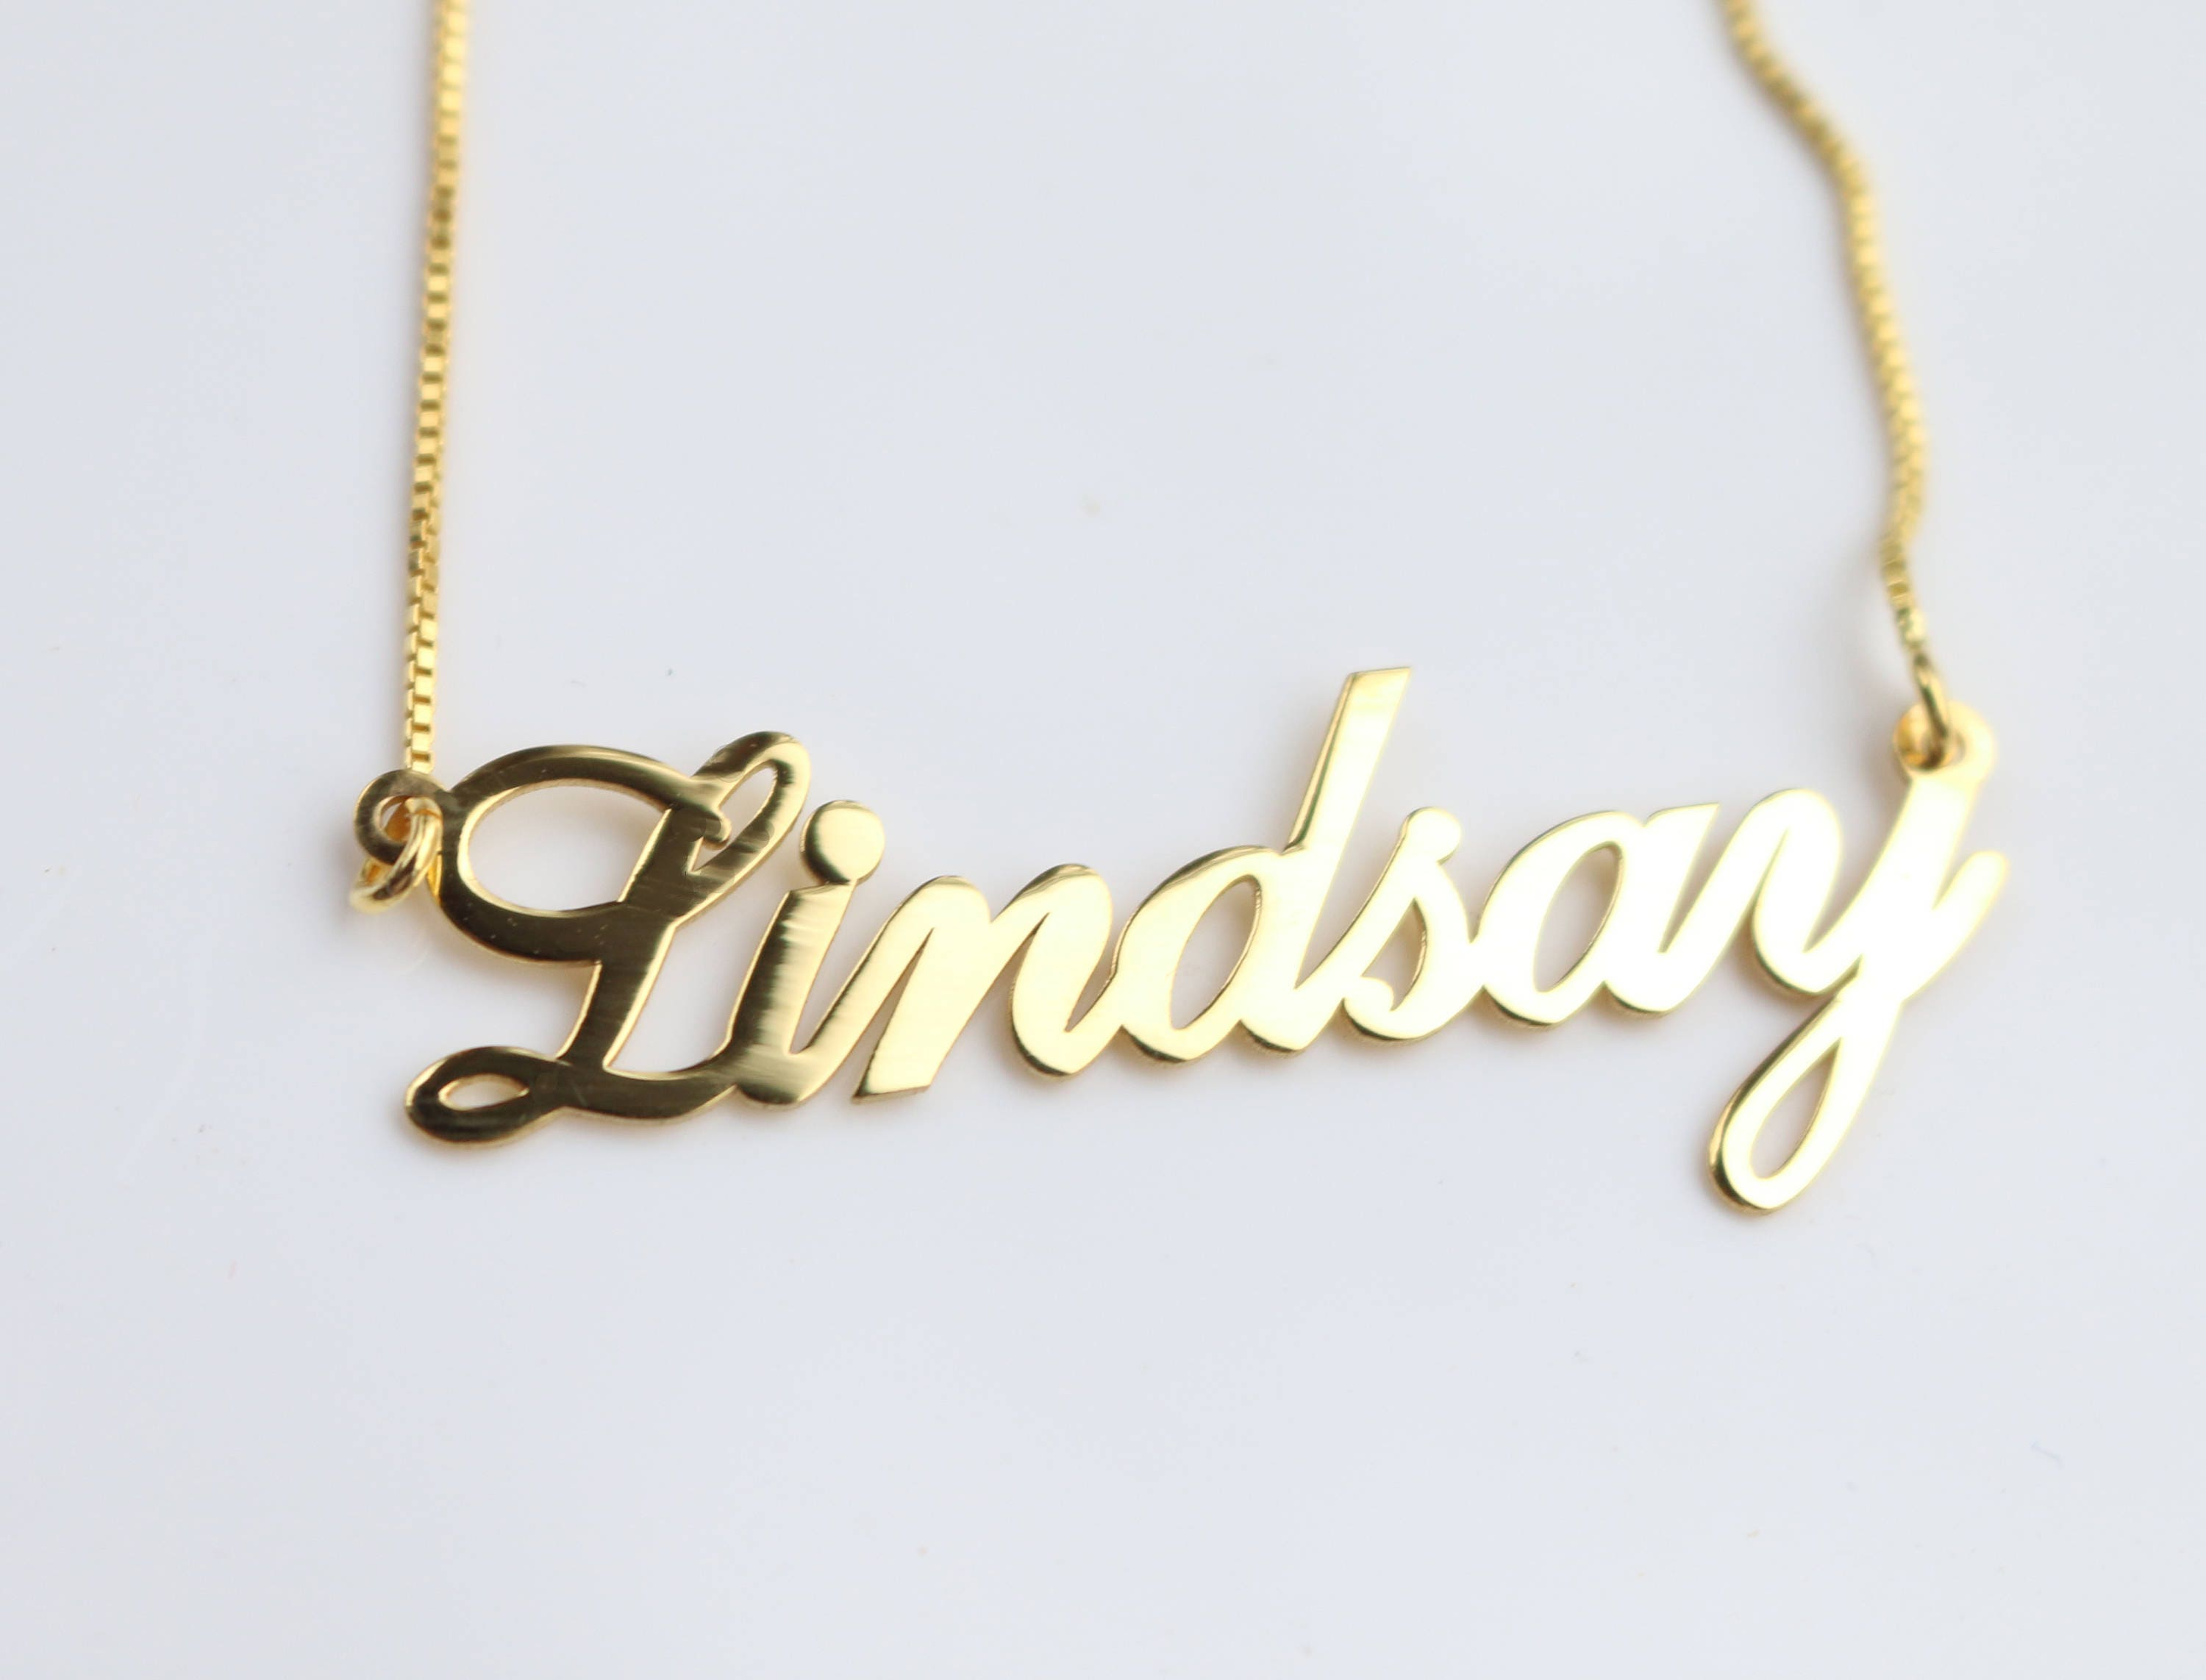 bar necklace handmade name cursive necklaces erin jewelry